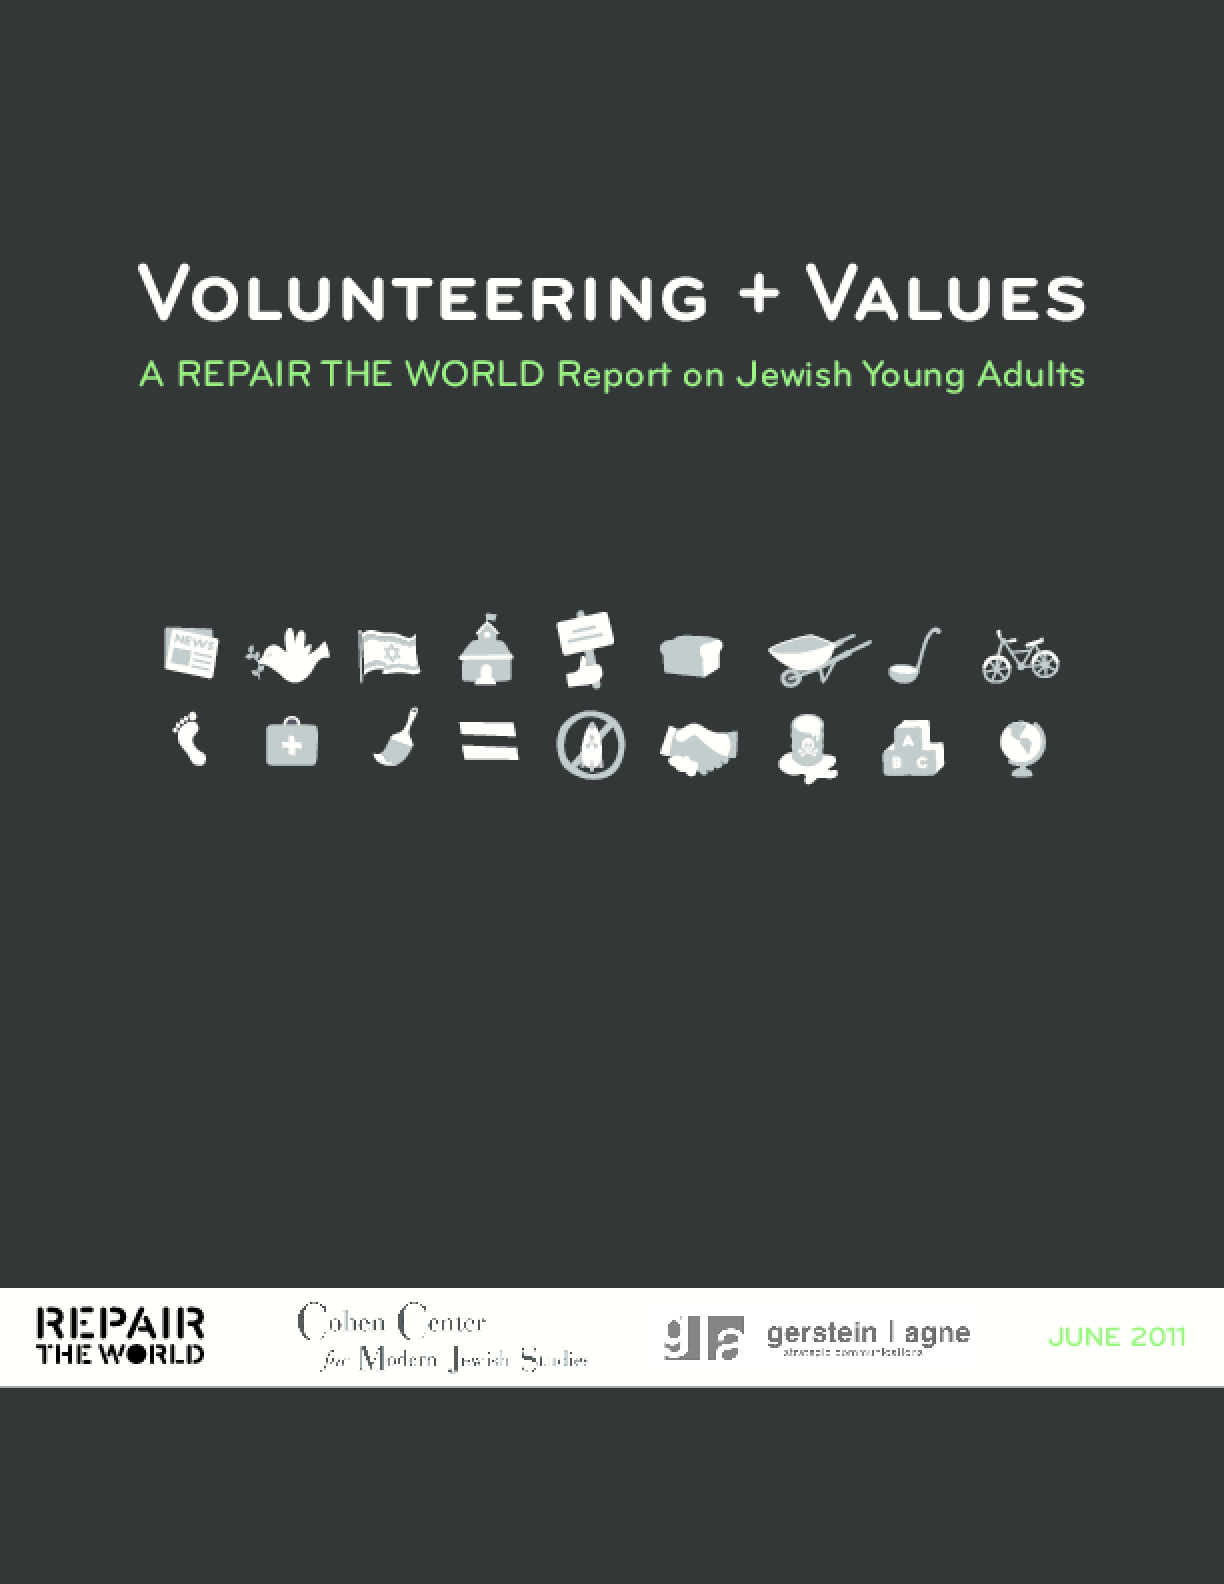 Volunteering + Values: A Repair the World Report on Jewish Young Adults